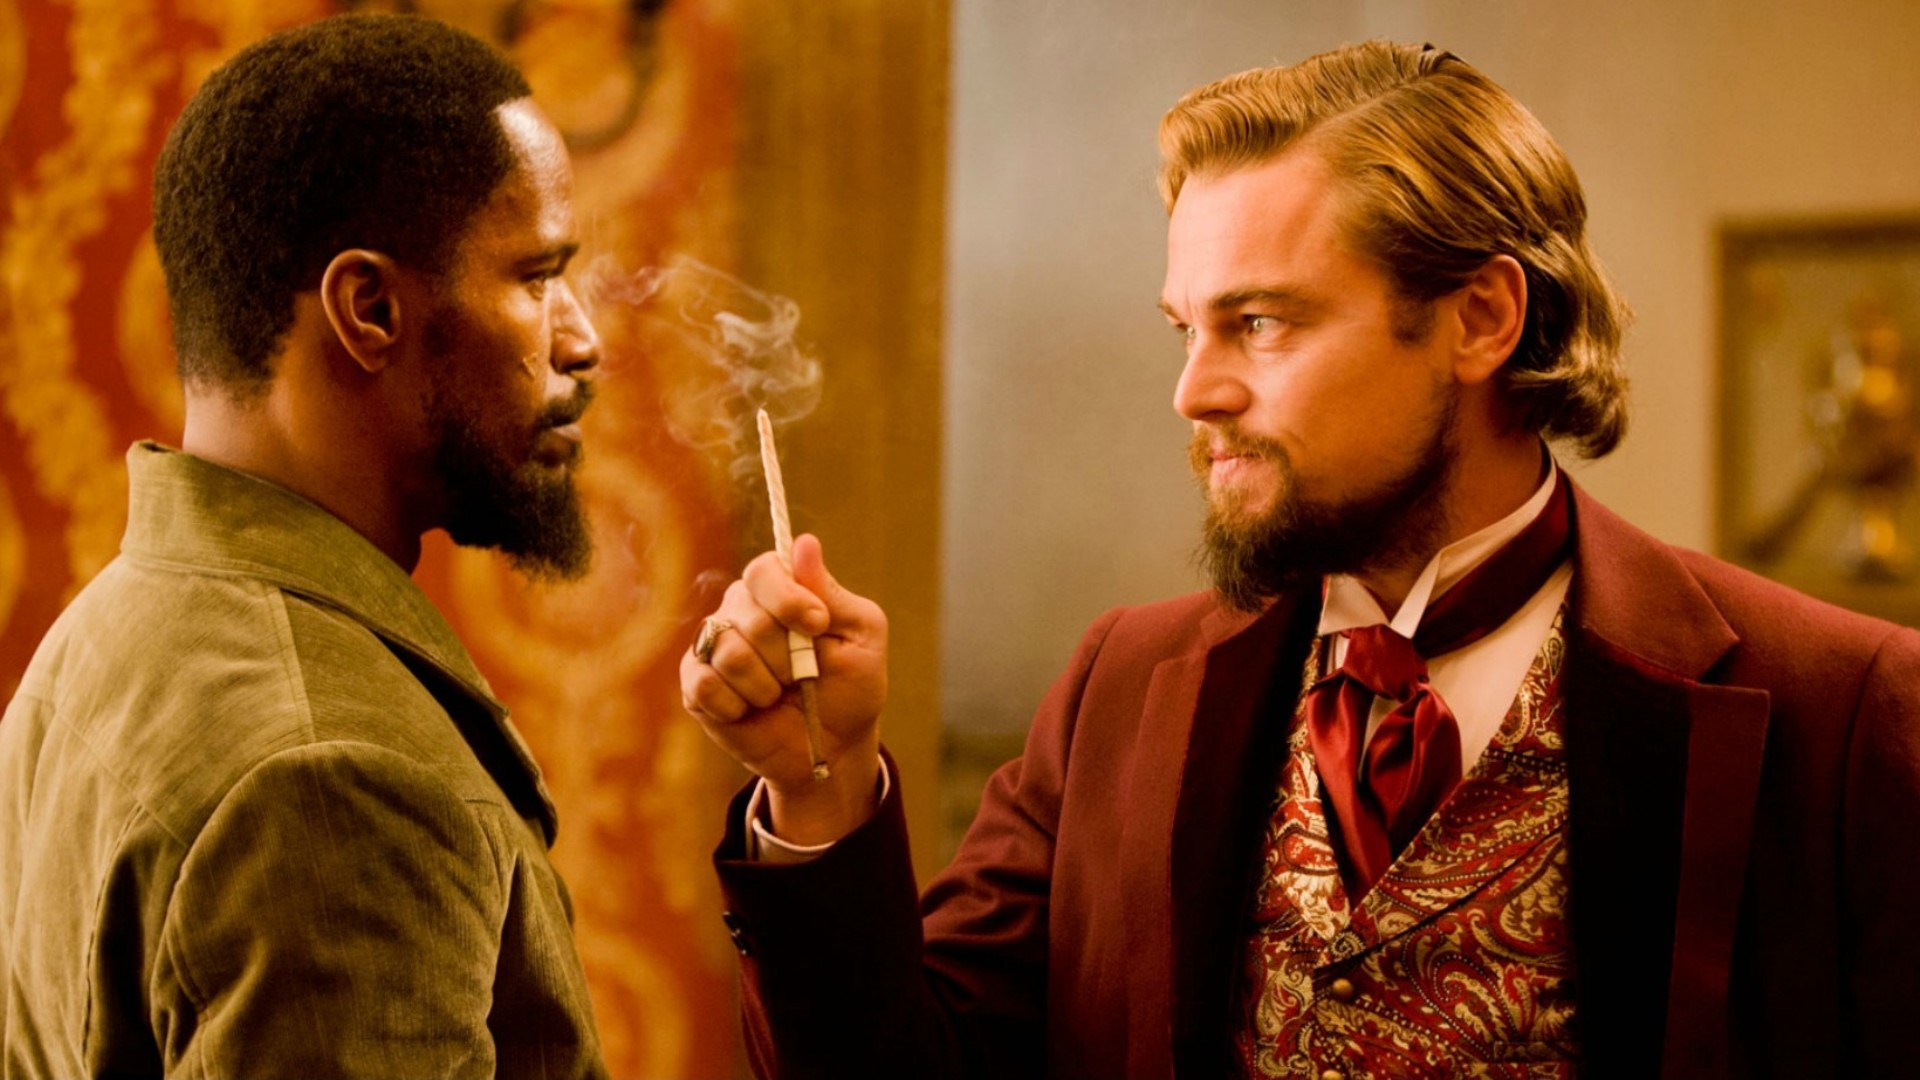 django unchained movie wallpaper 57174